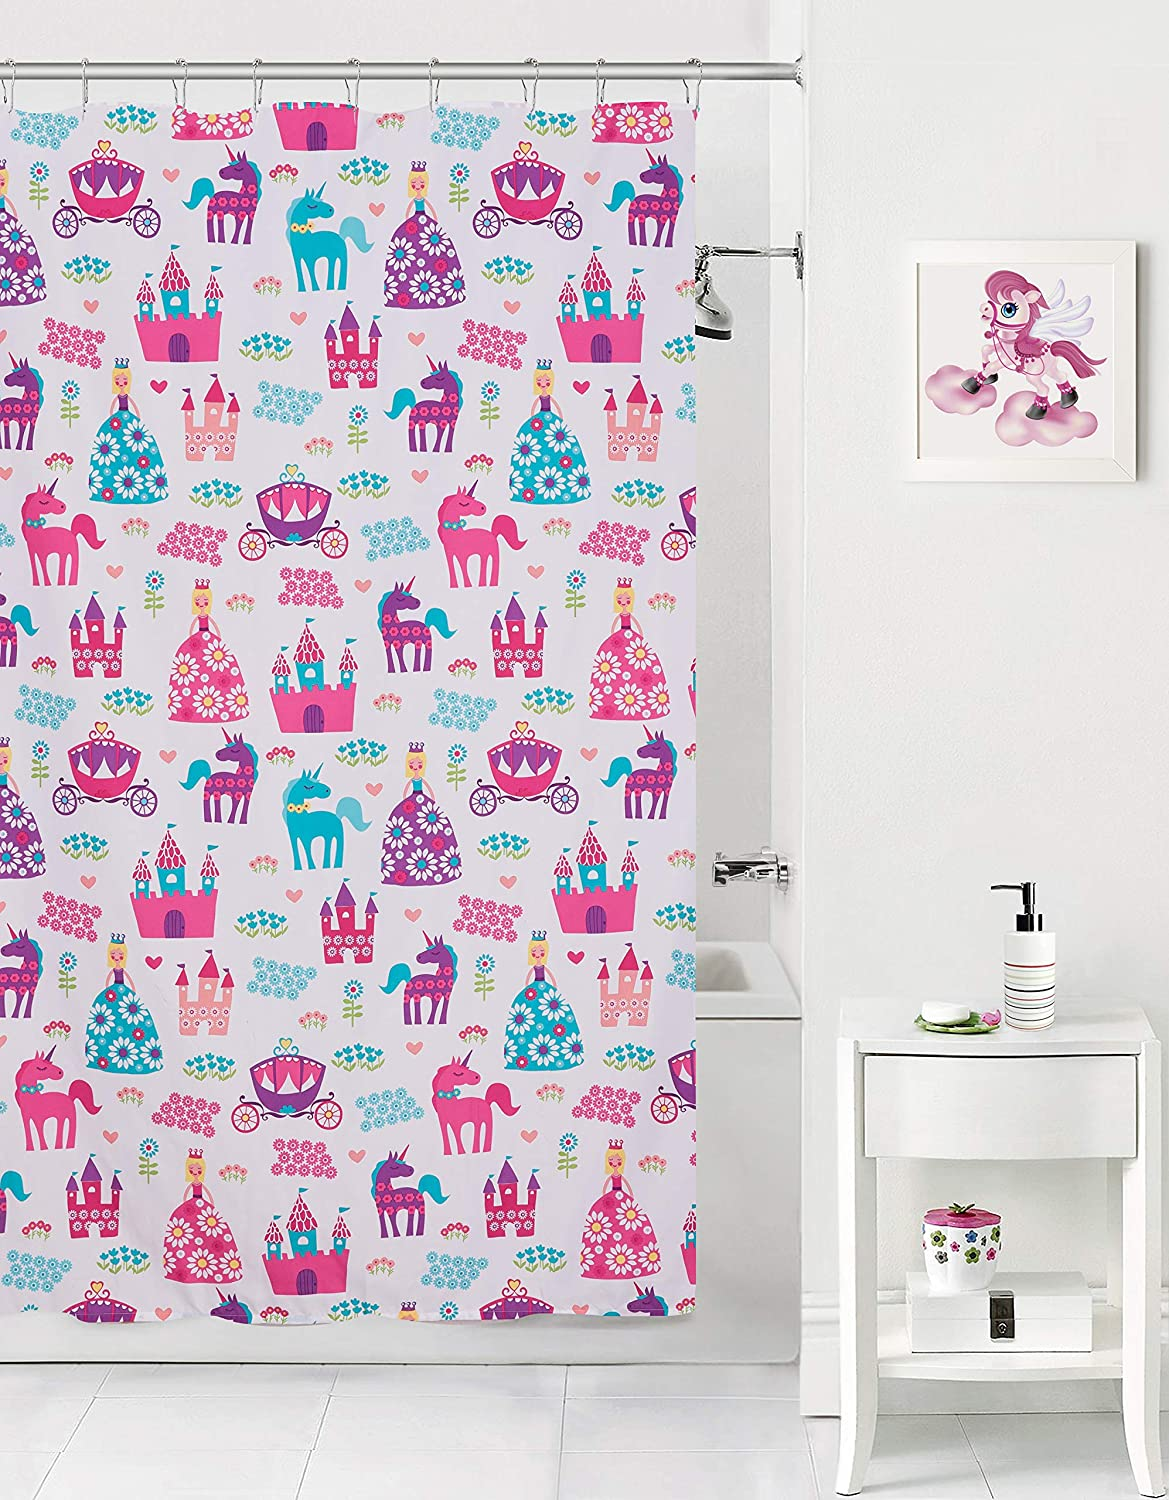 Mainstay Kids Pretty Princess, Floral, Castle, Unicorns and Hearts Reversible Bedding Twin Comforter for Girls (5 Piece in a Bag) (Shower Curtain)